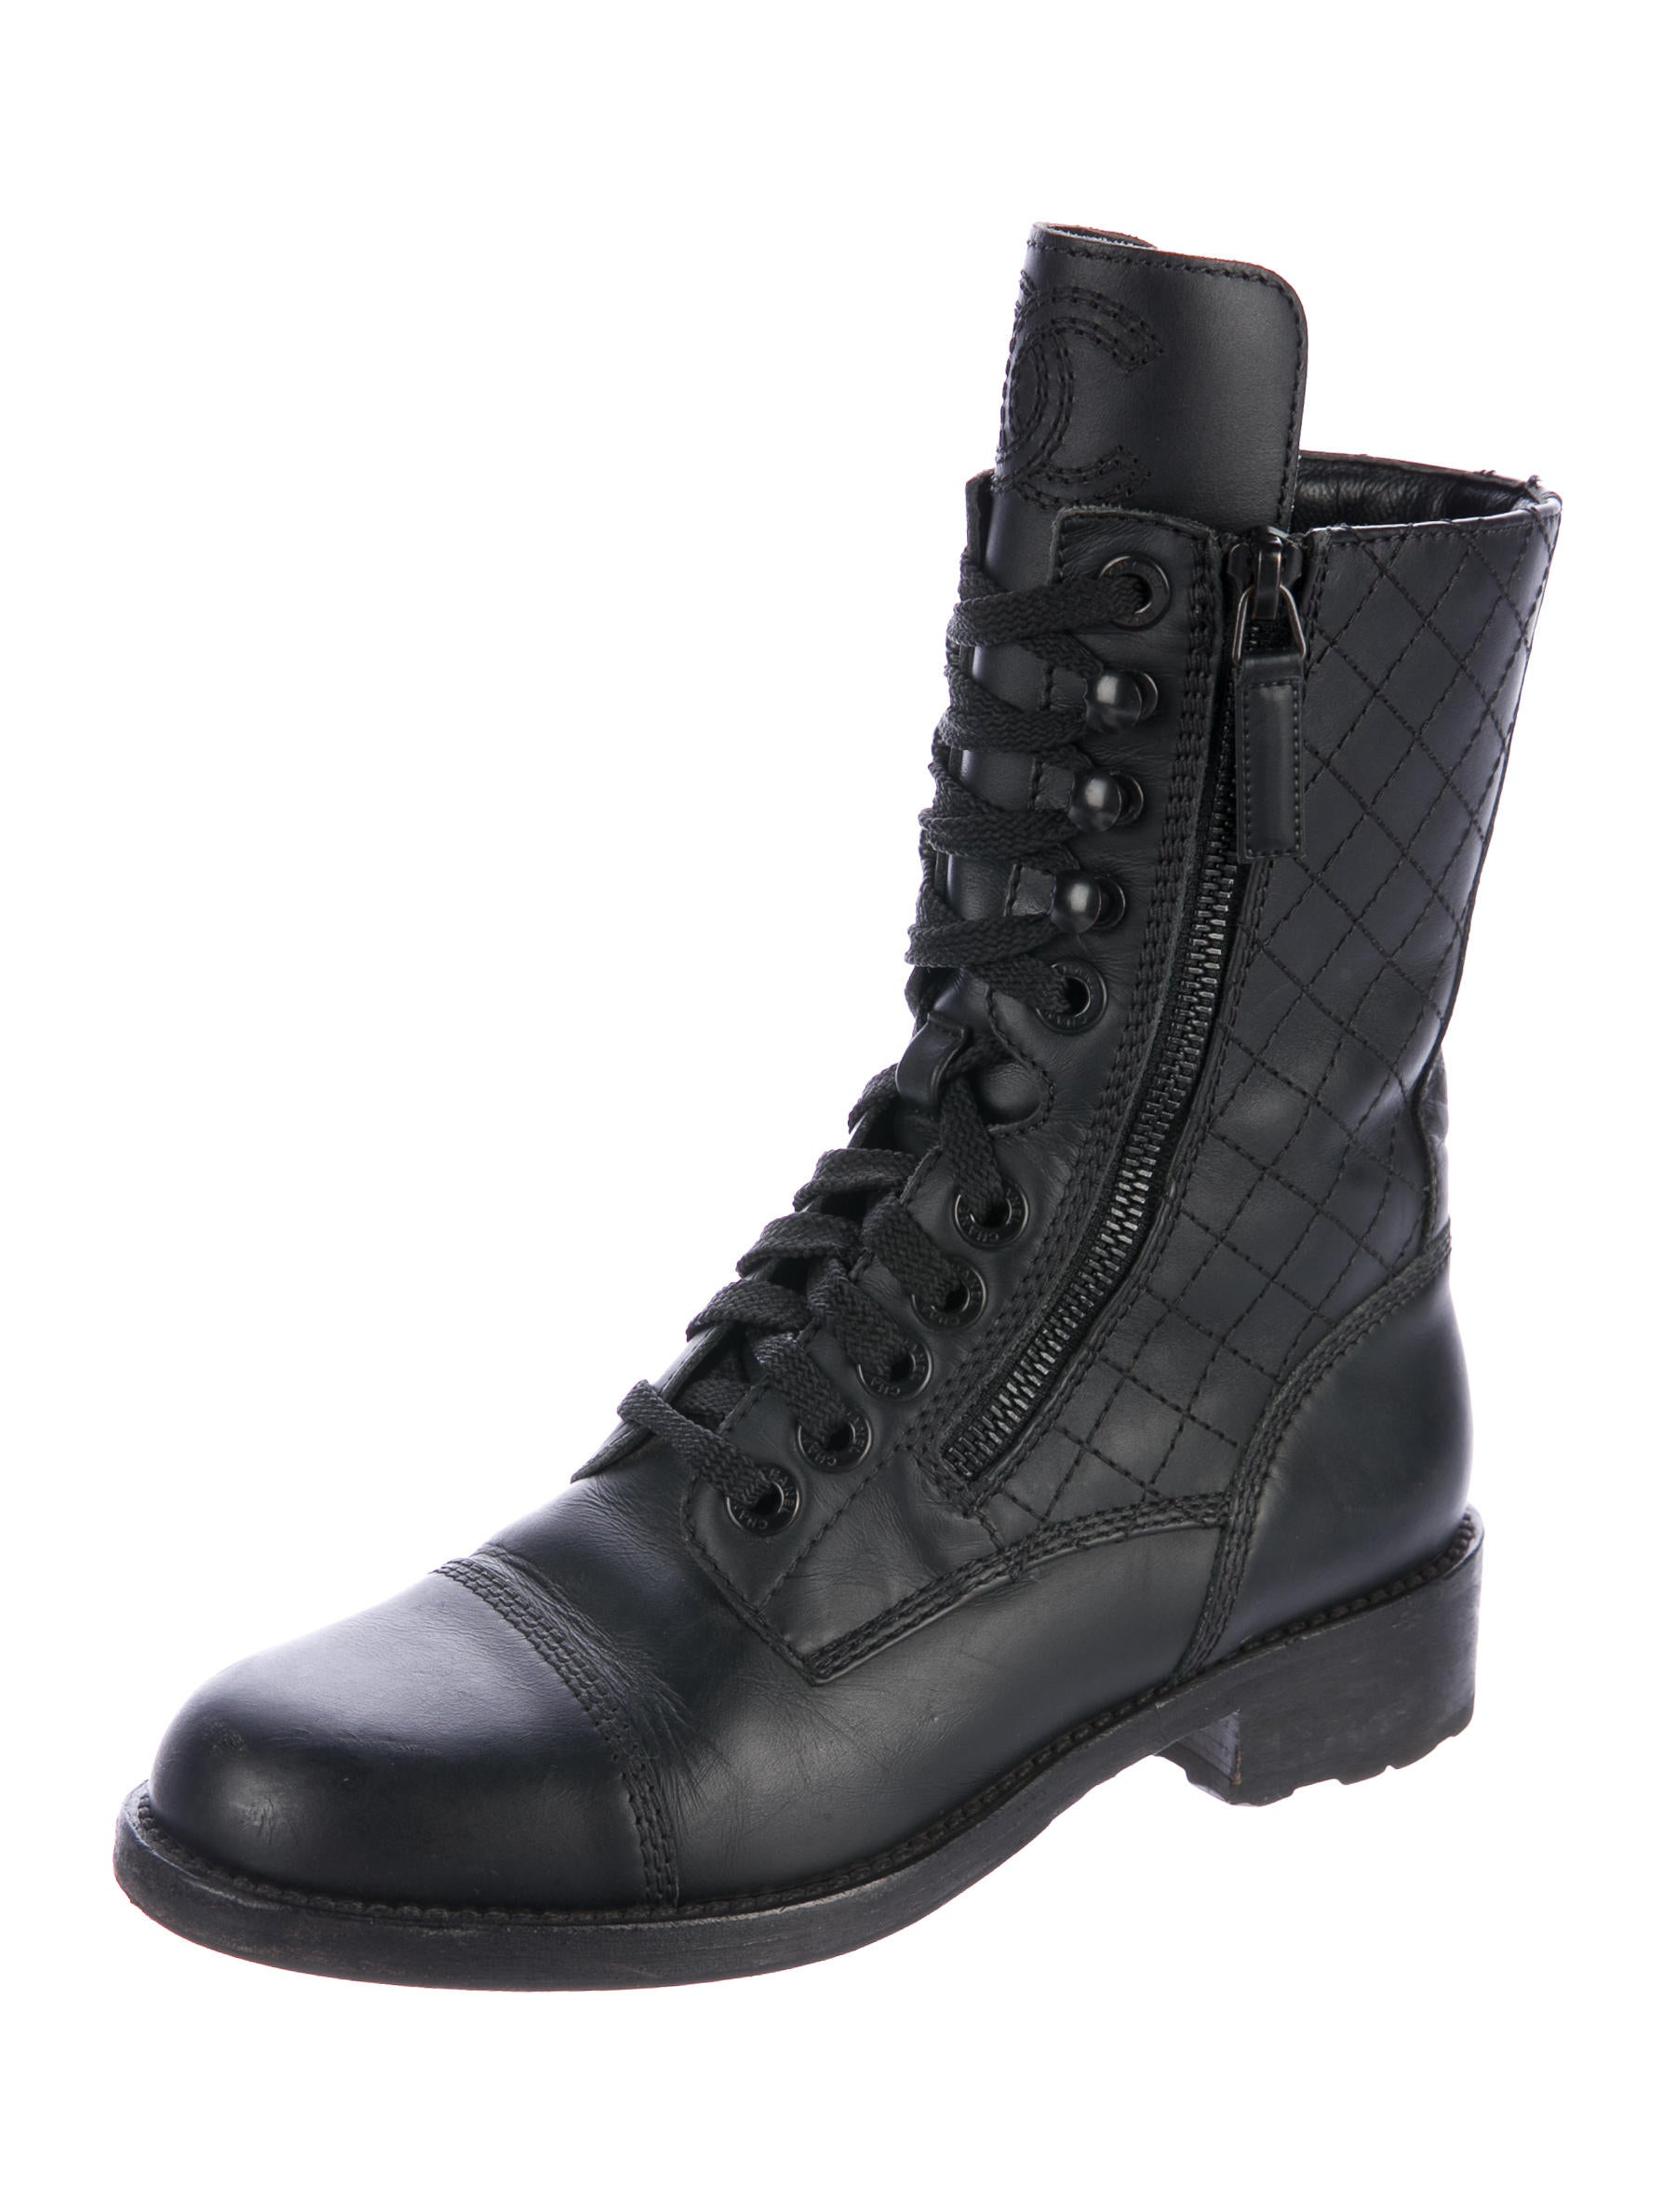 chanel quilted boots. quilted leather combat boots chanel